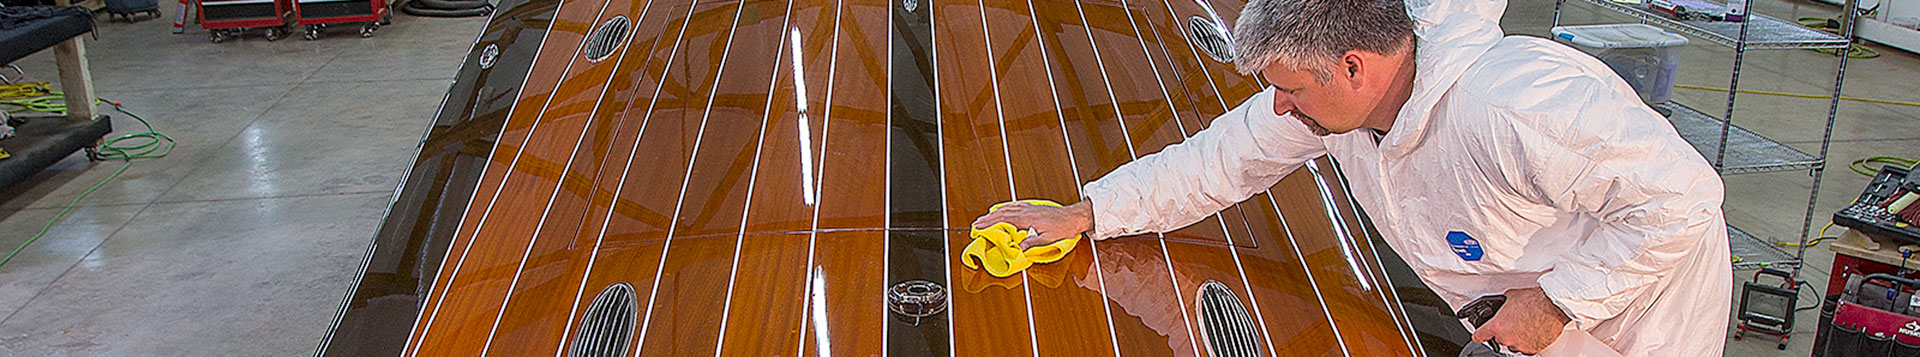 Coeur Custom can take care of your boat's exterior care and maintenance